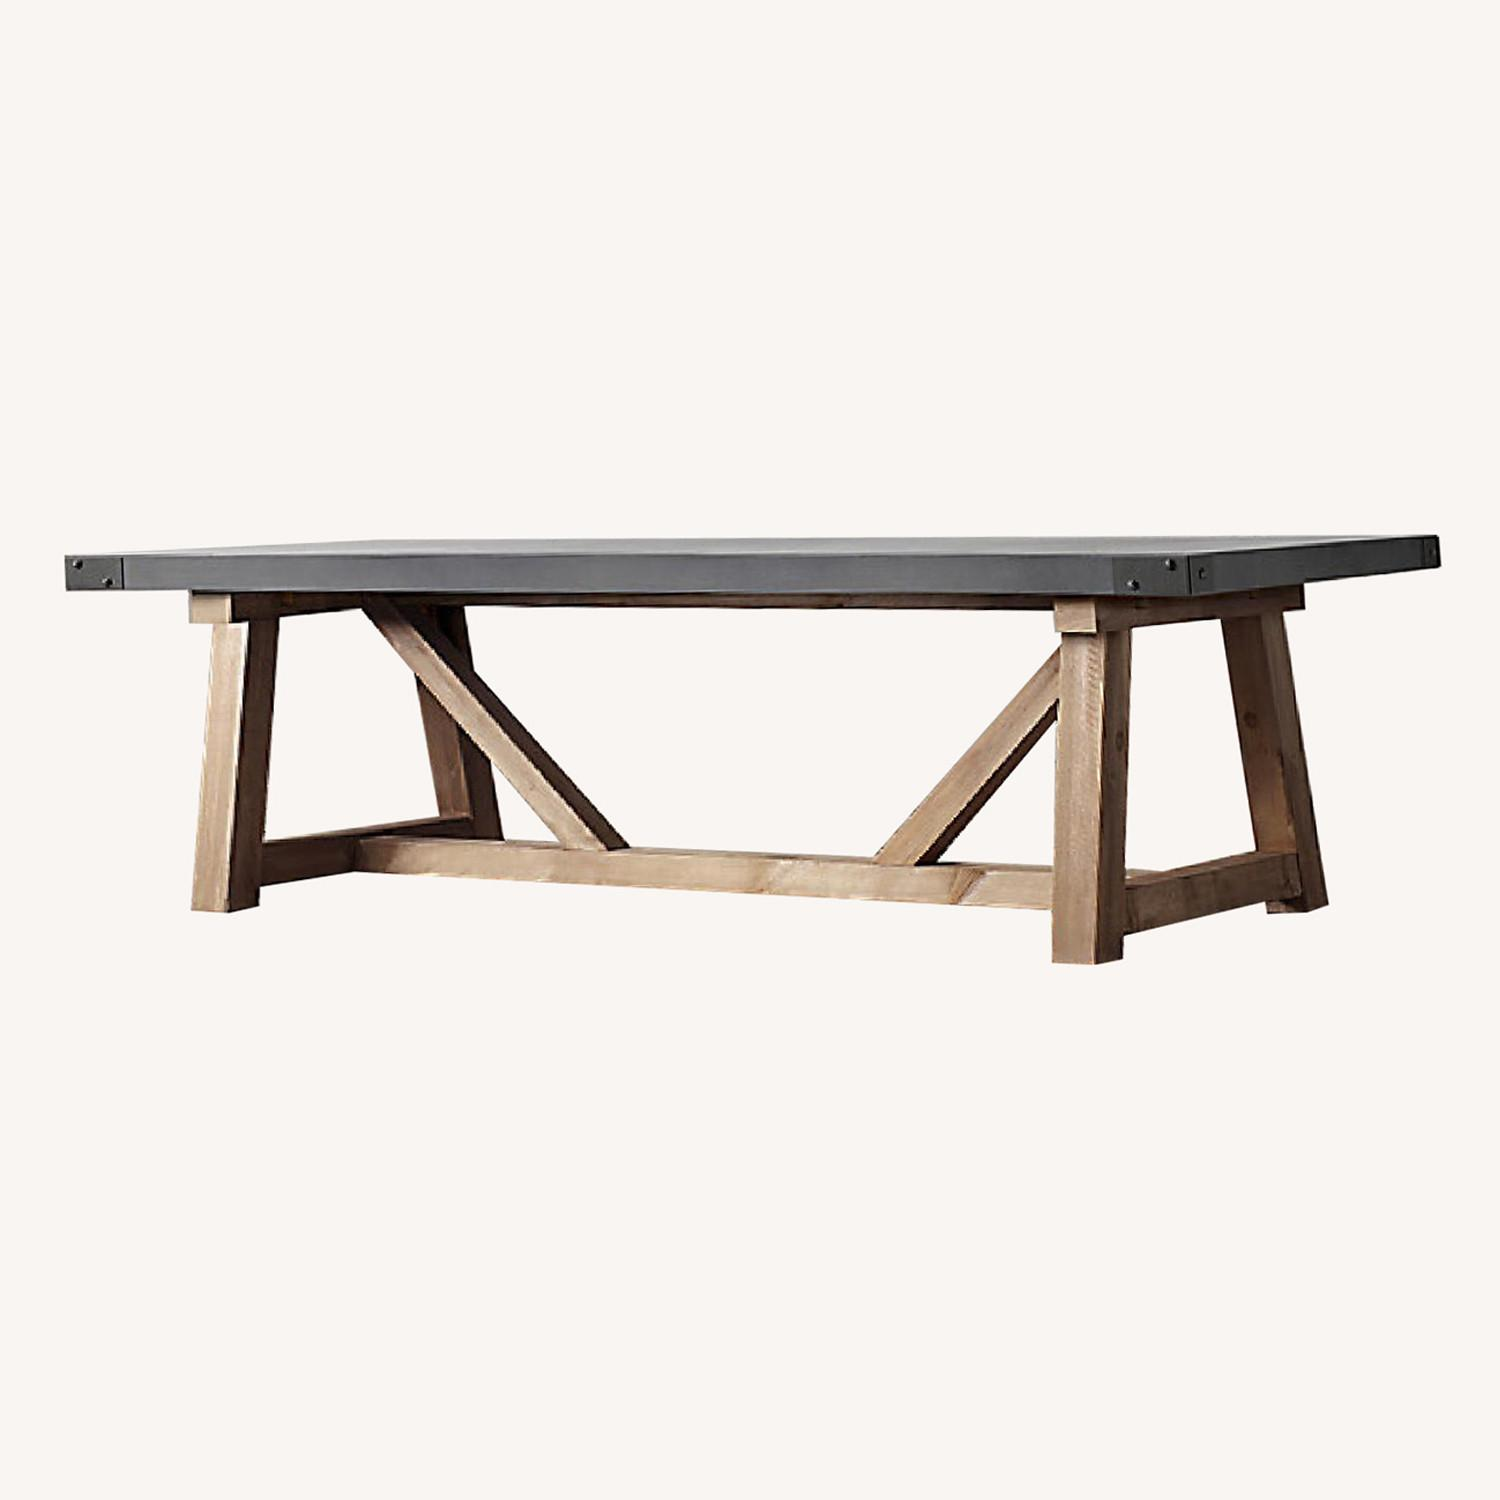 Restoration Hardware Salvaged Wood and Concrete Table - image-0